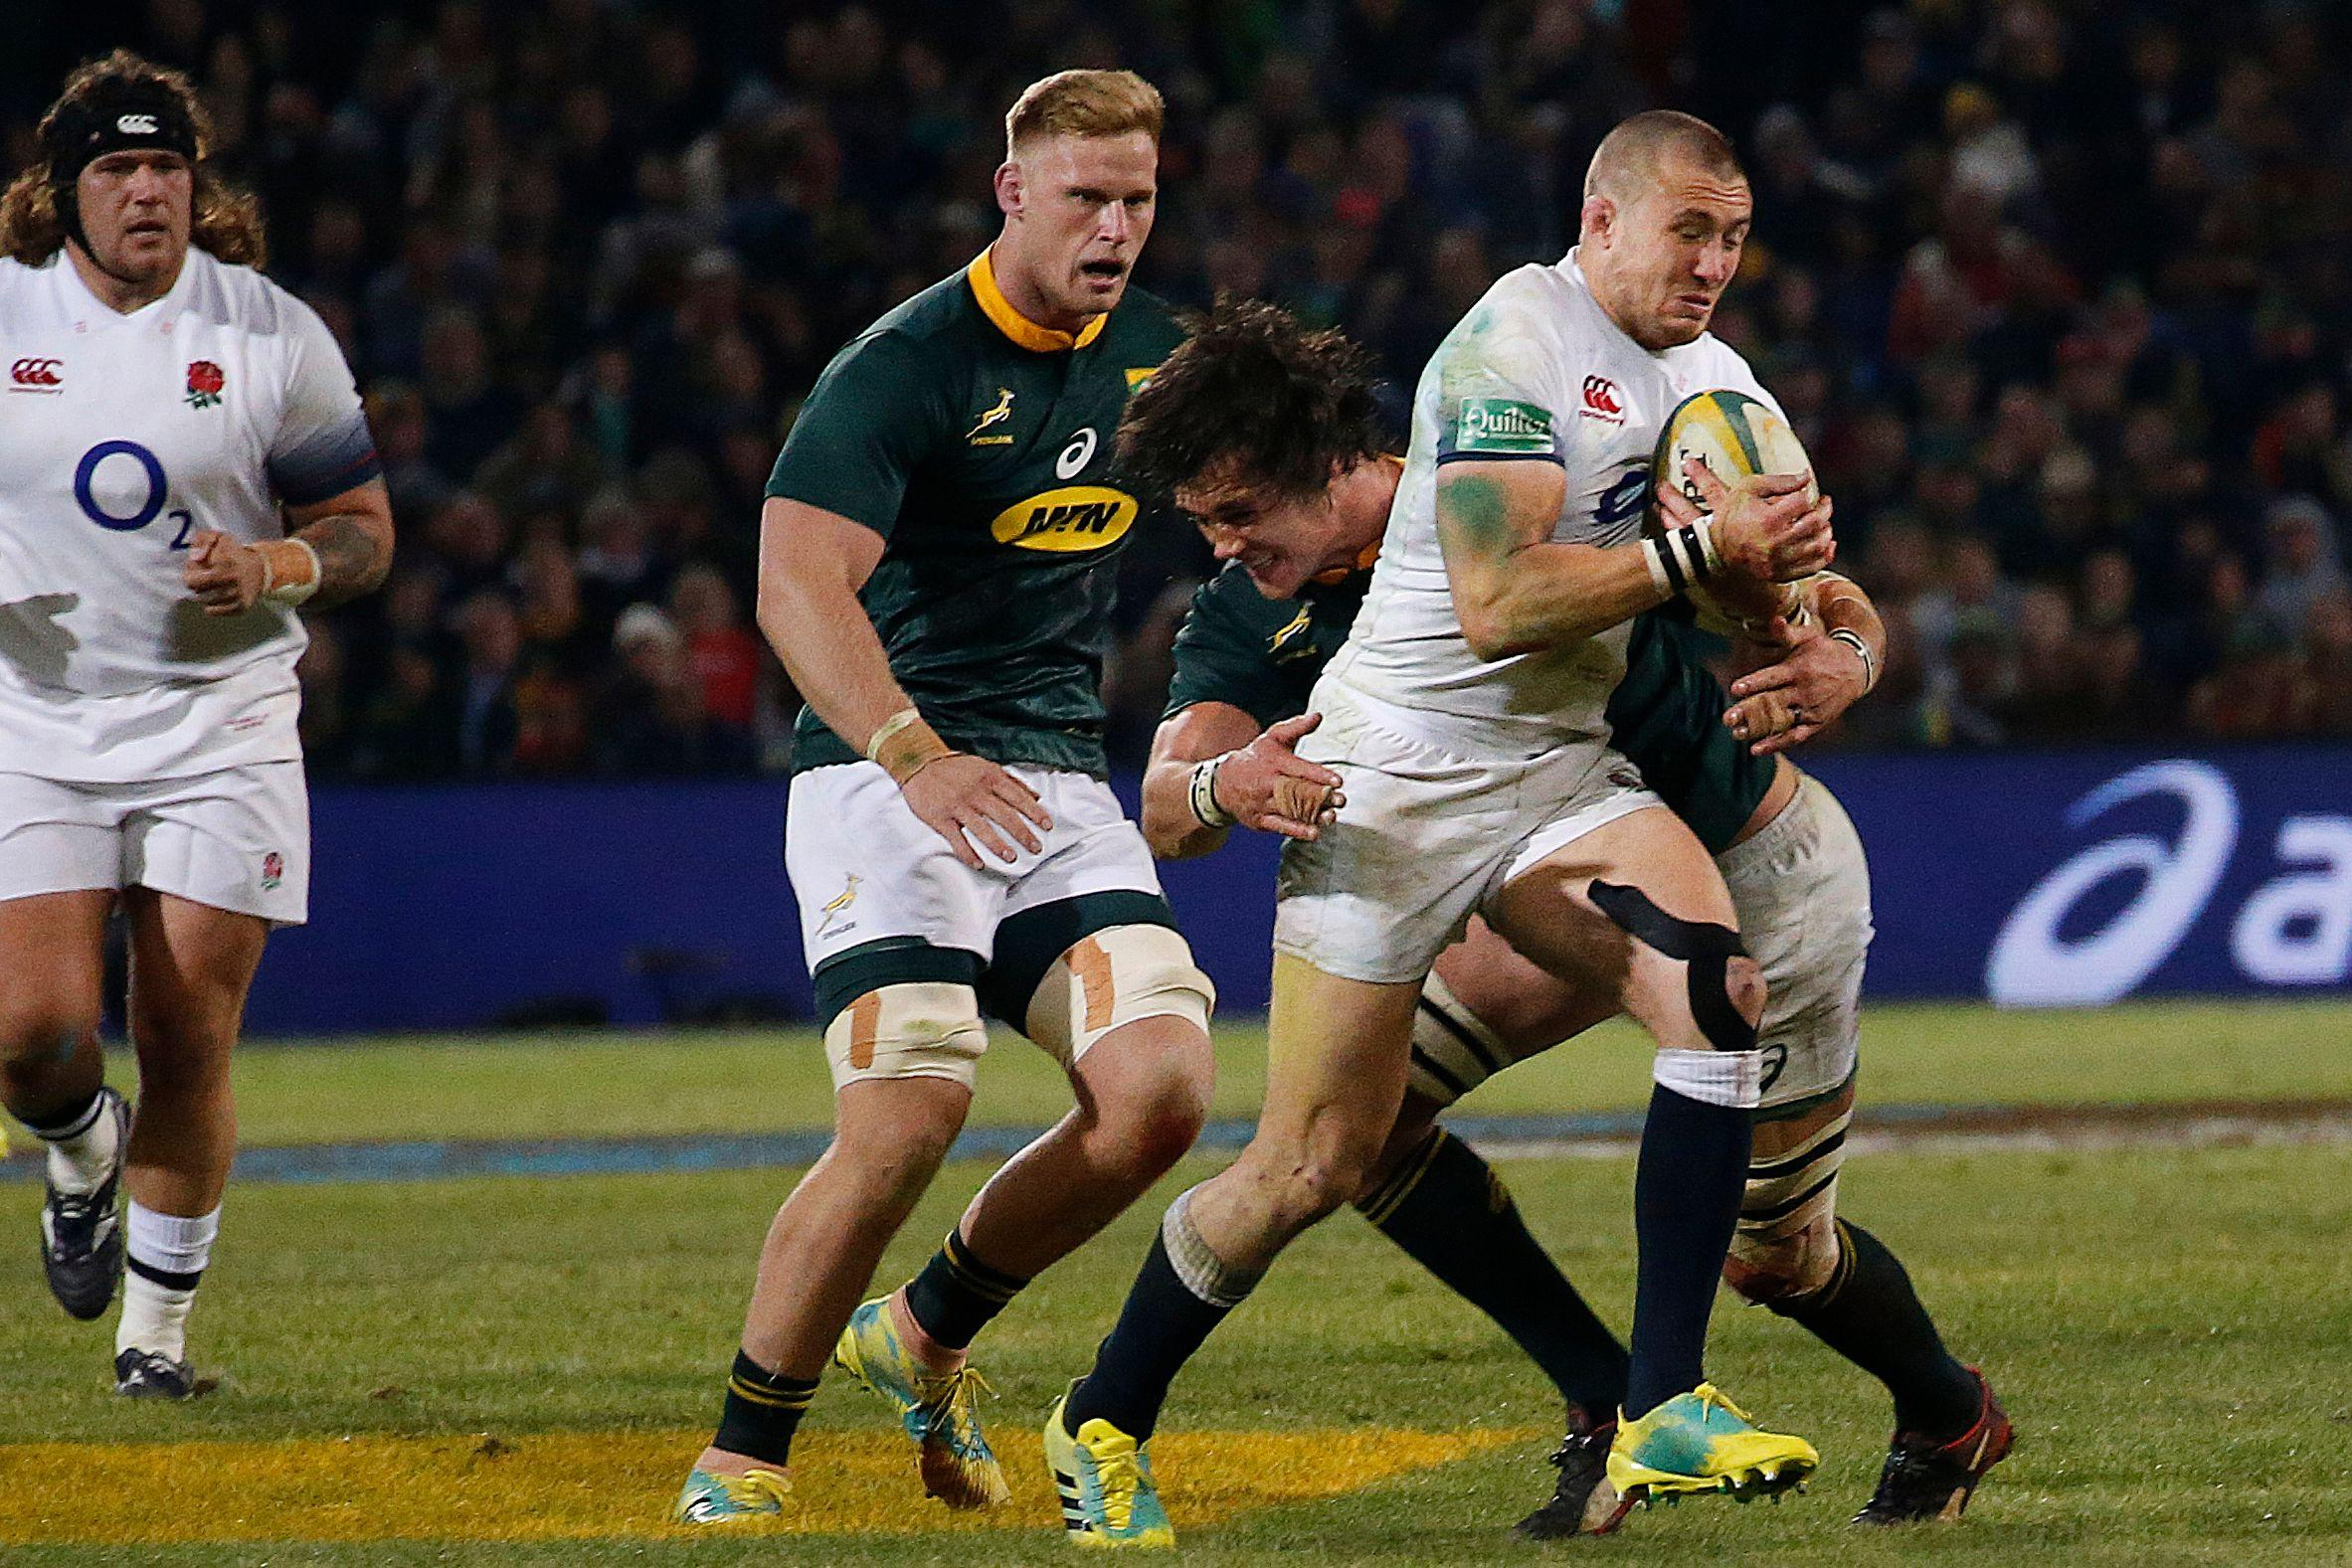 England will be looking to salvage some pride against South Africa in Cape Town on Sunday